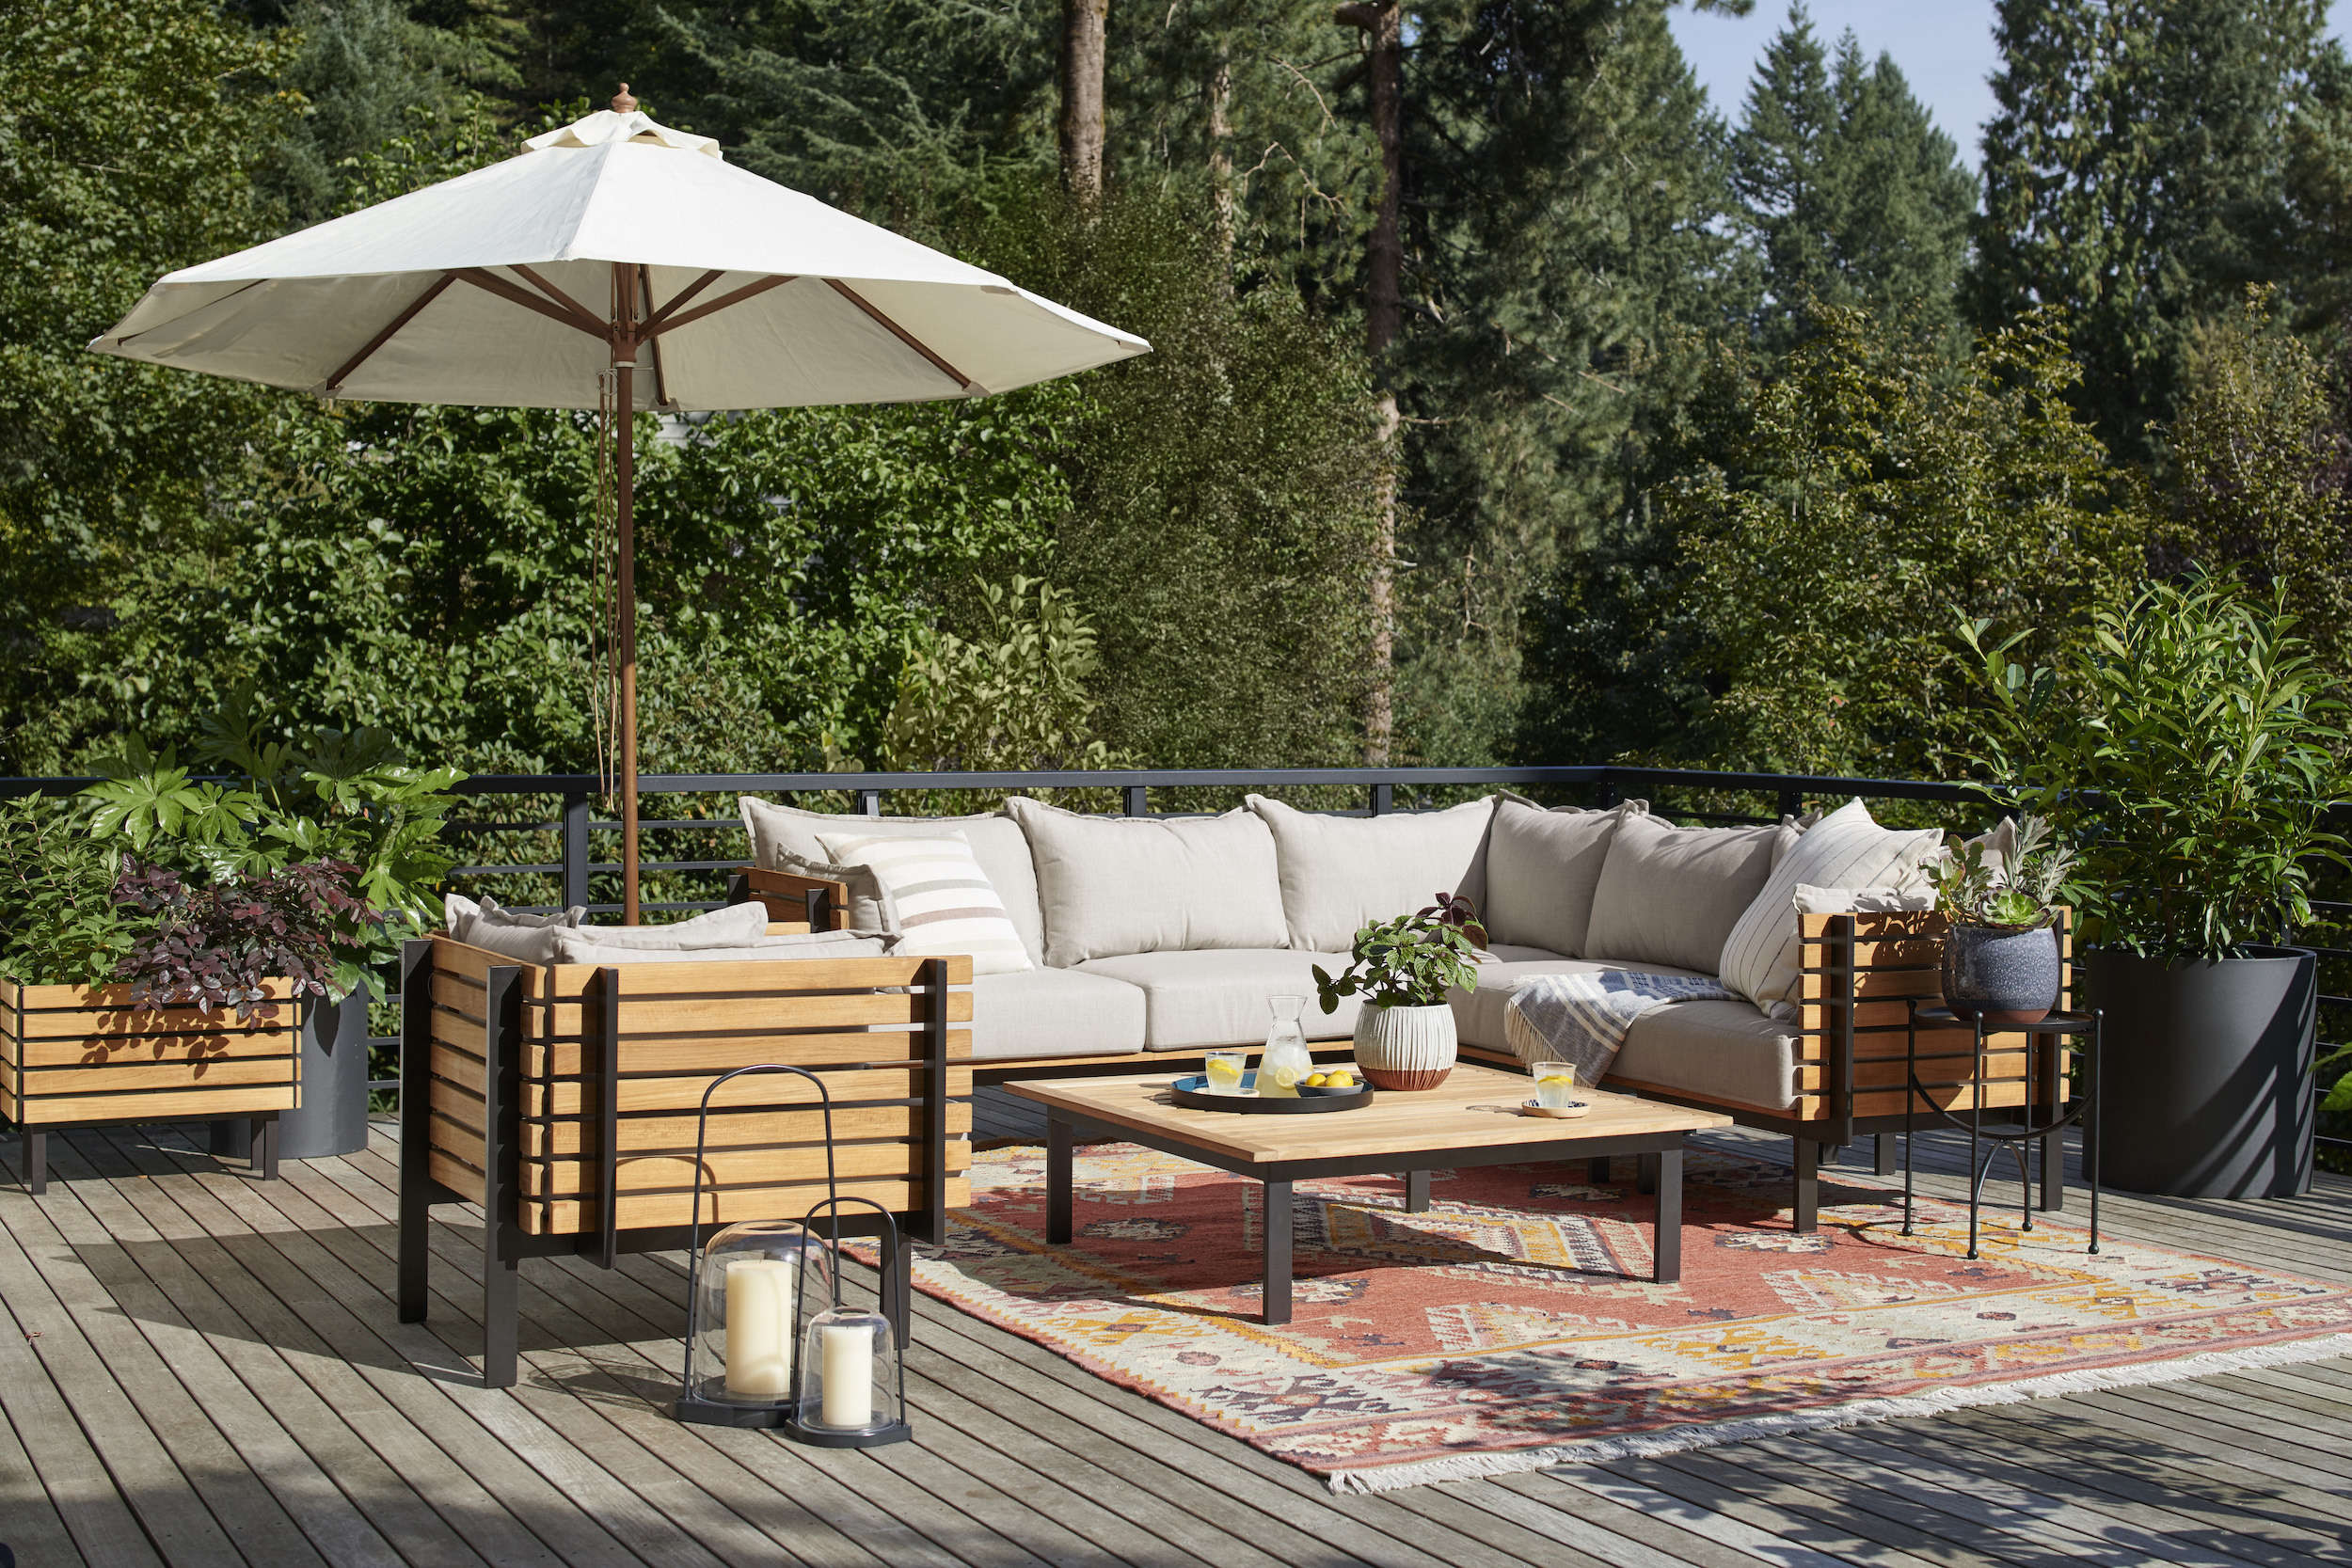 Outdoor Havens: 9 Essentials for Creating a Garden Oasis, from Rejuvenation - Remodelista